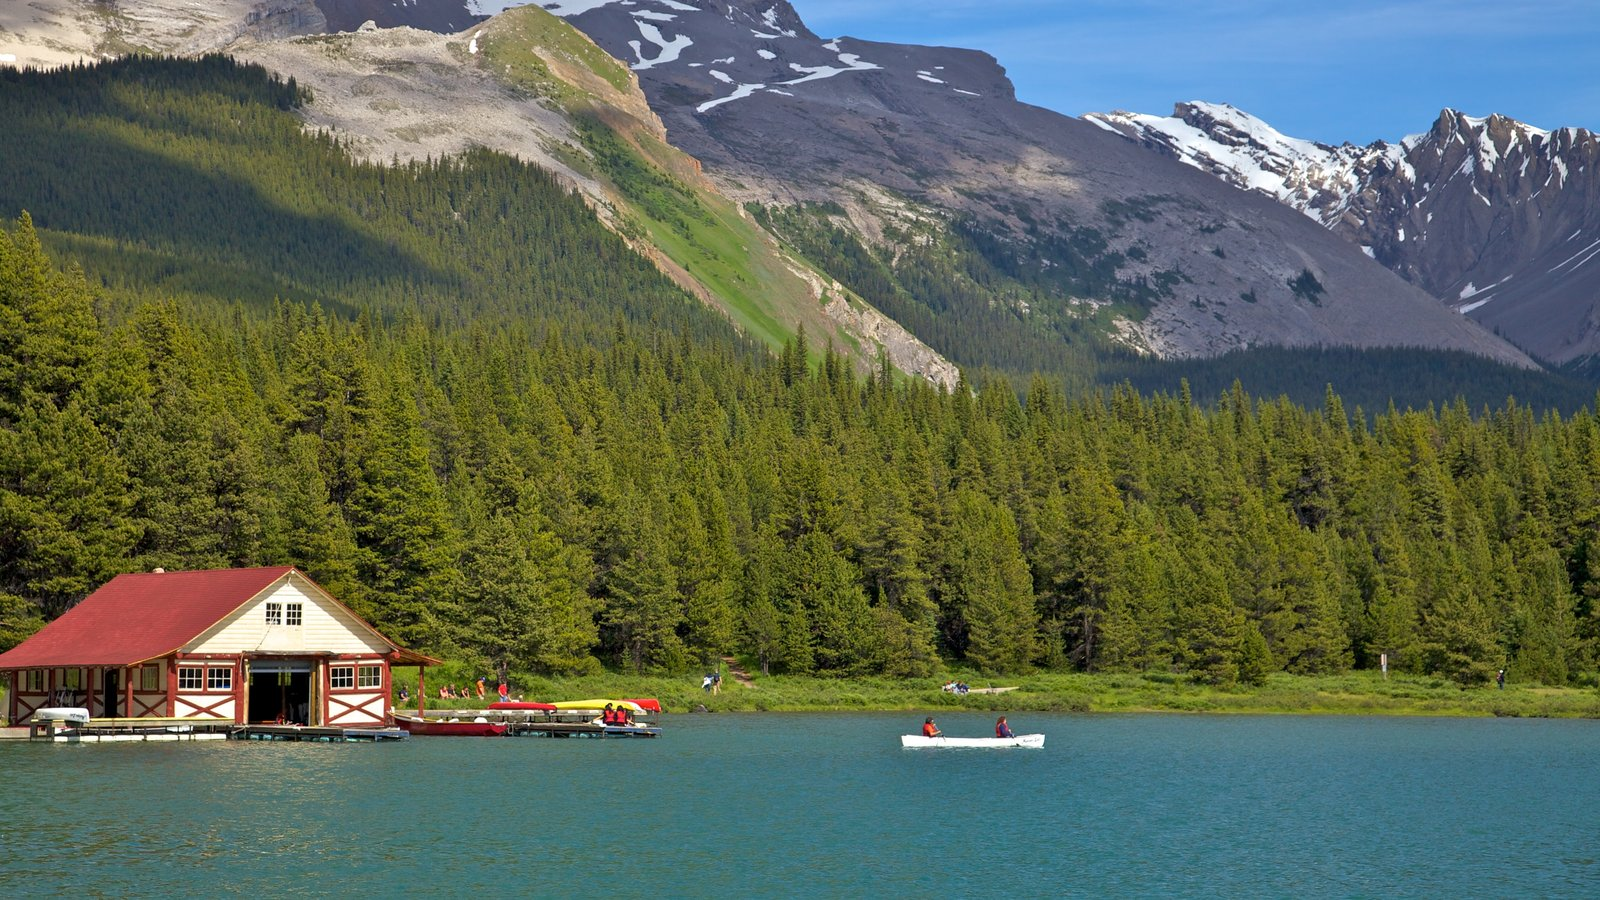 Maligne Lake which includes mountains, landscape views and a lake or waterhole